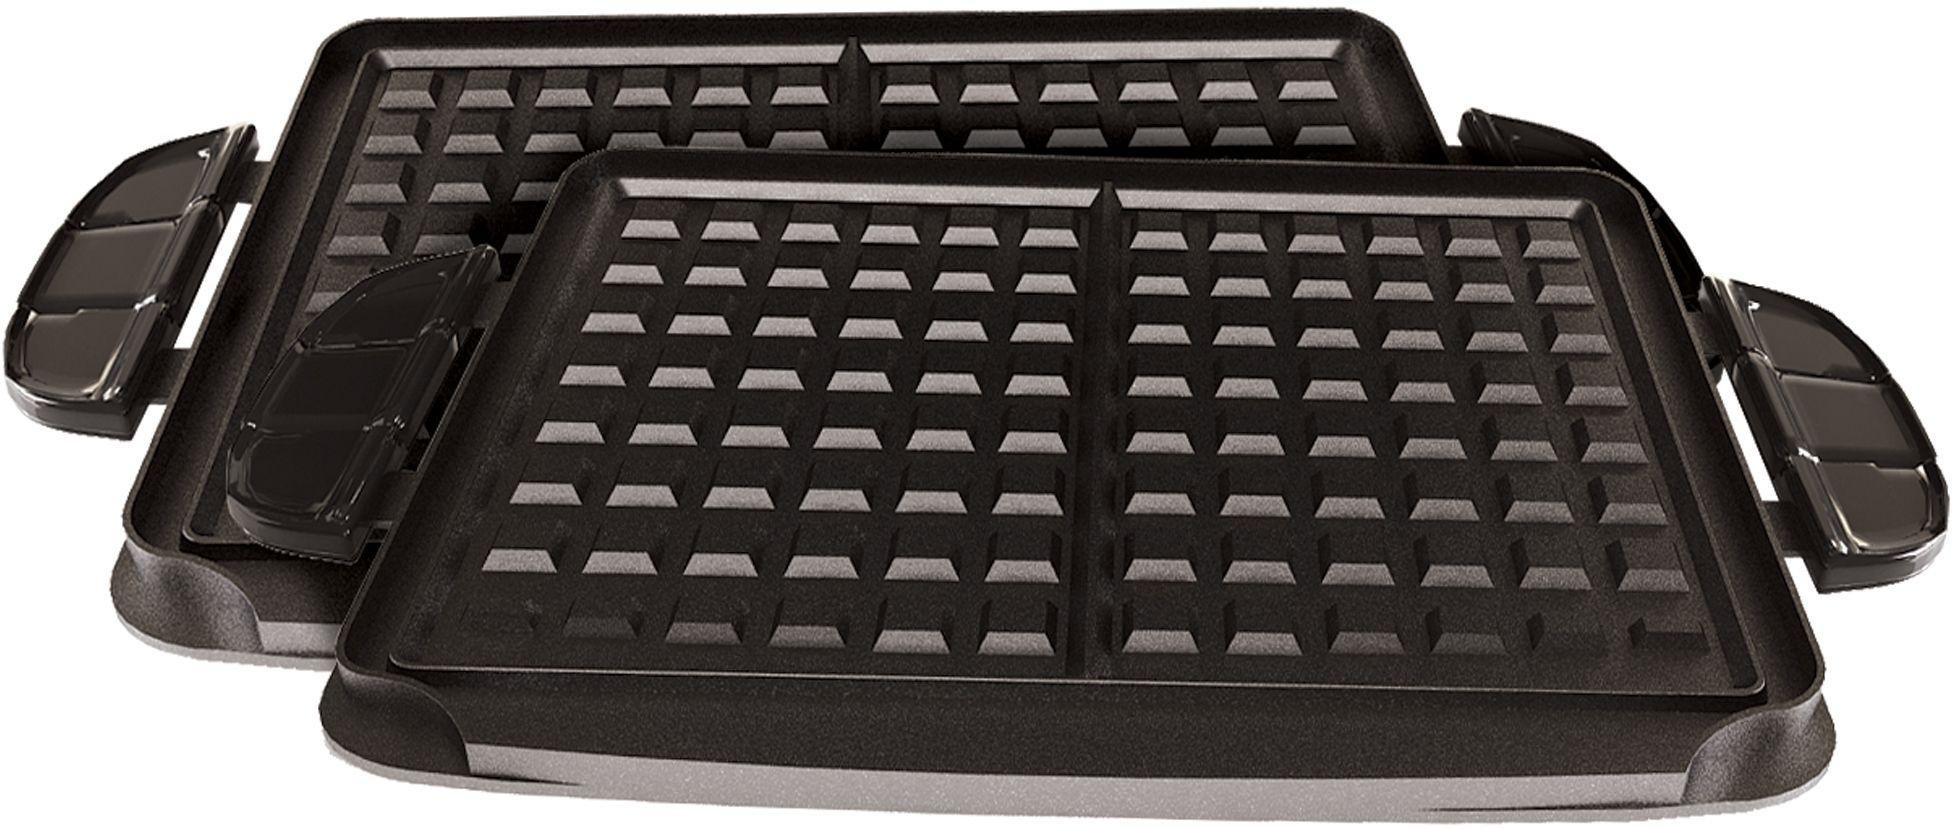 George foreman 21611 evolve grill red - Health grill with removable plates ...